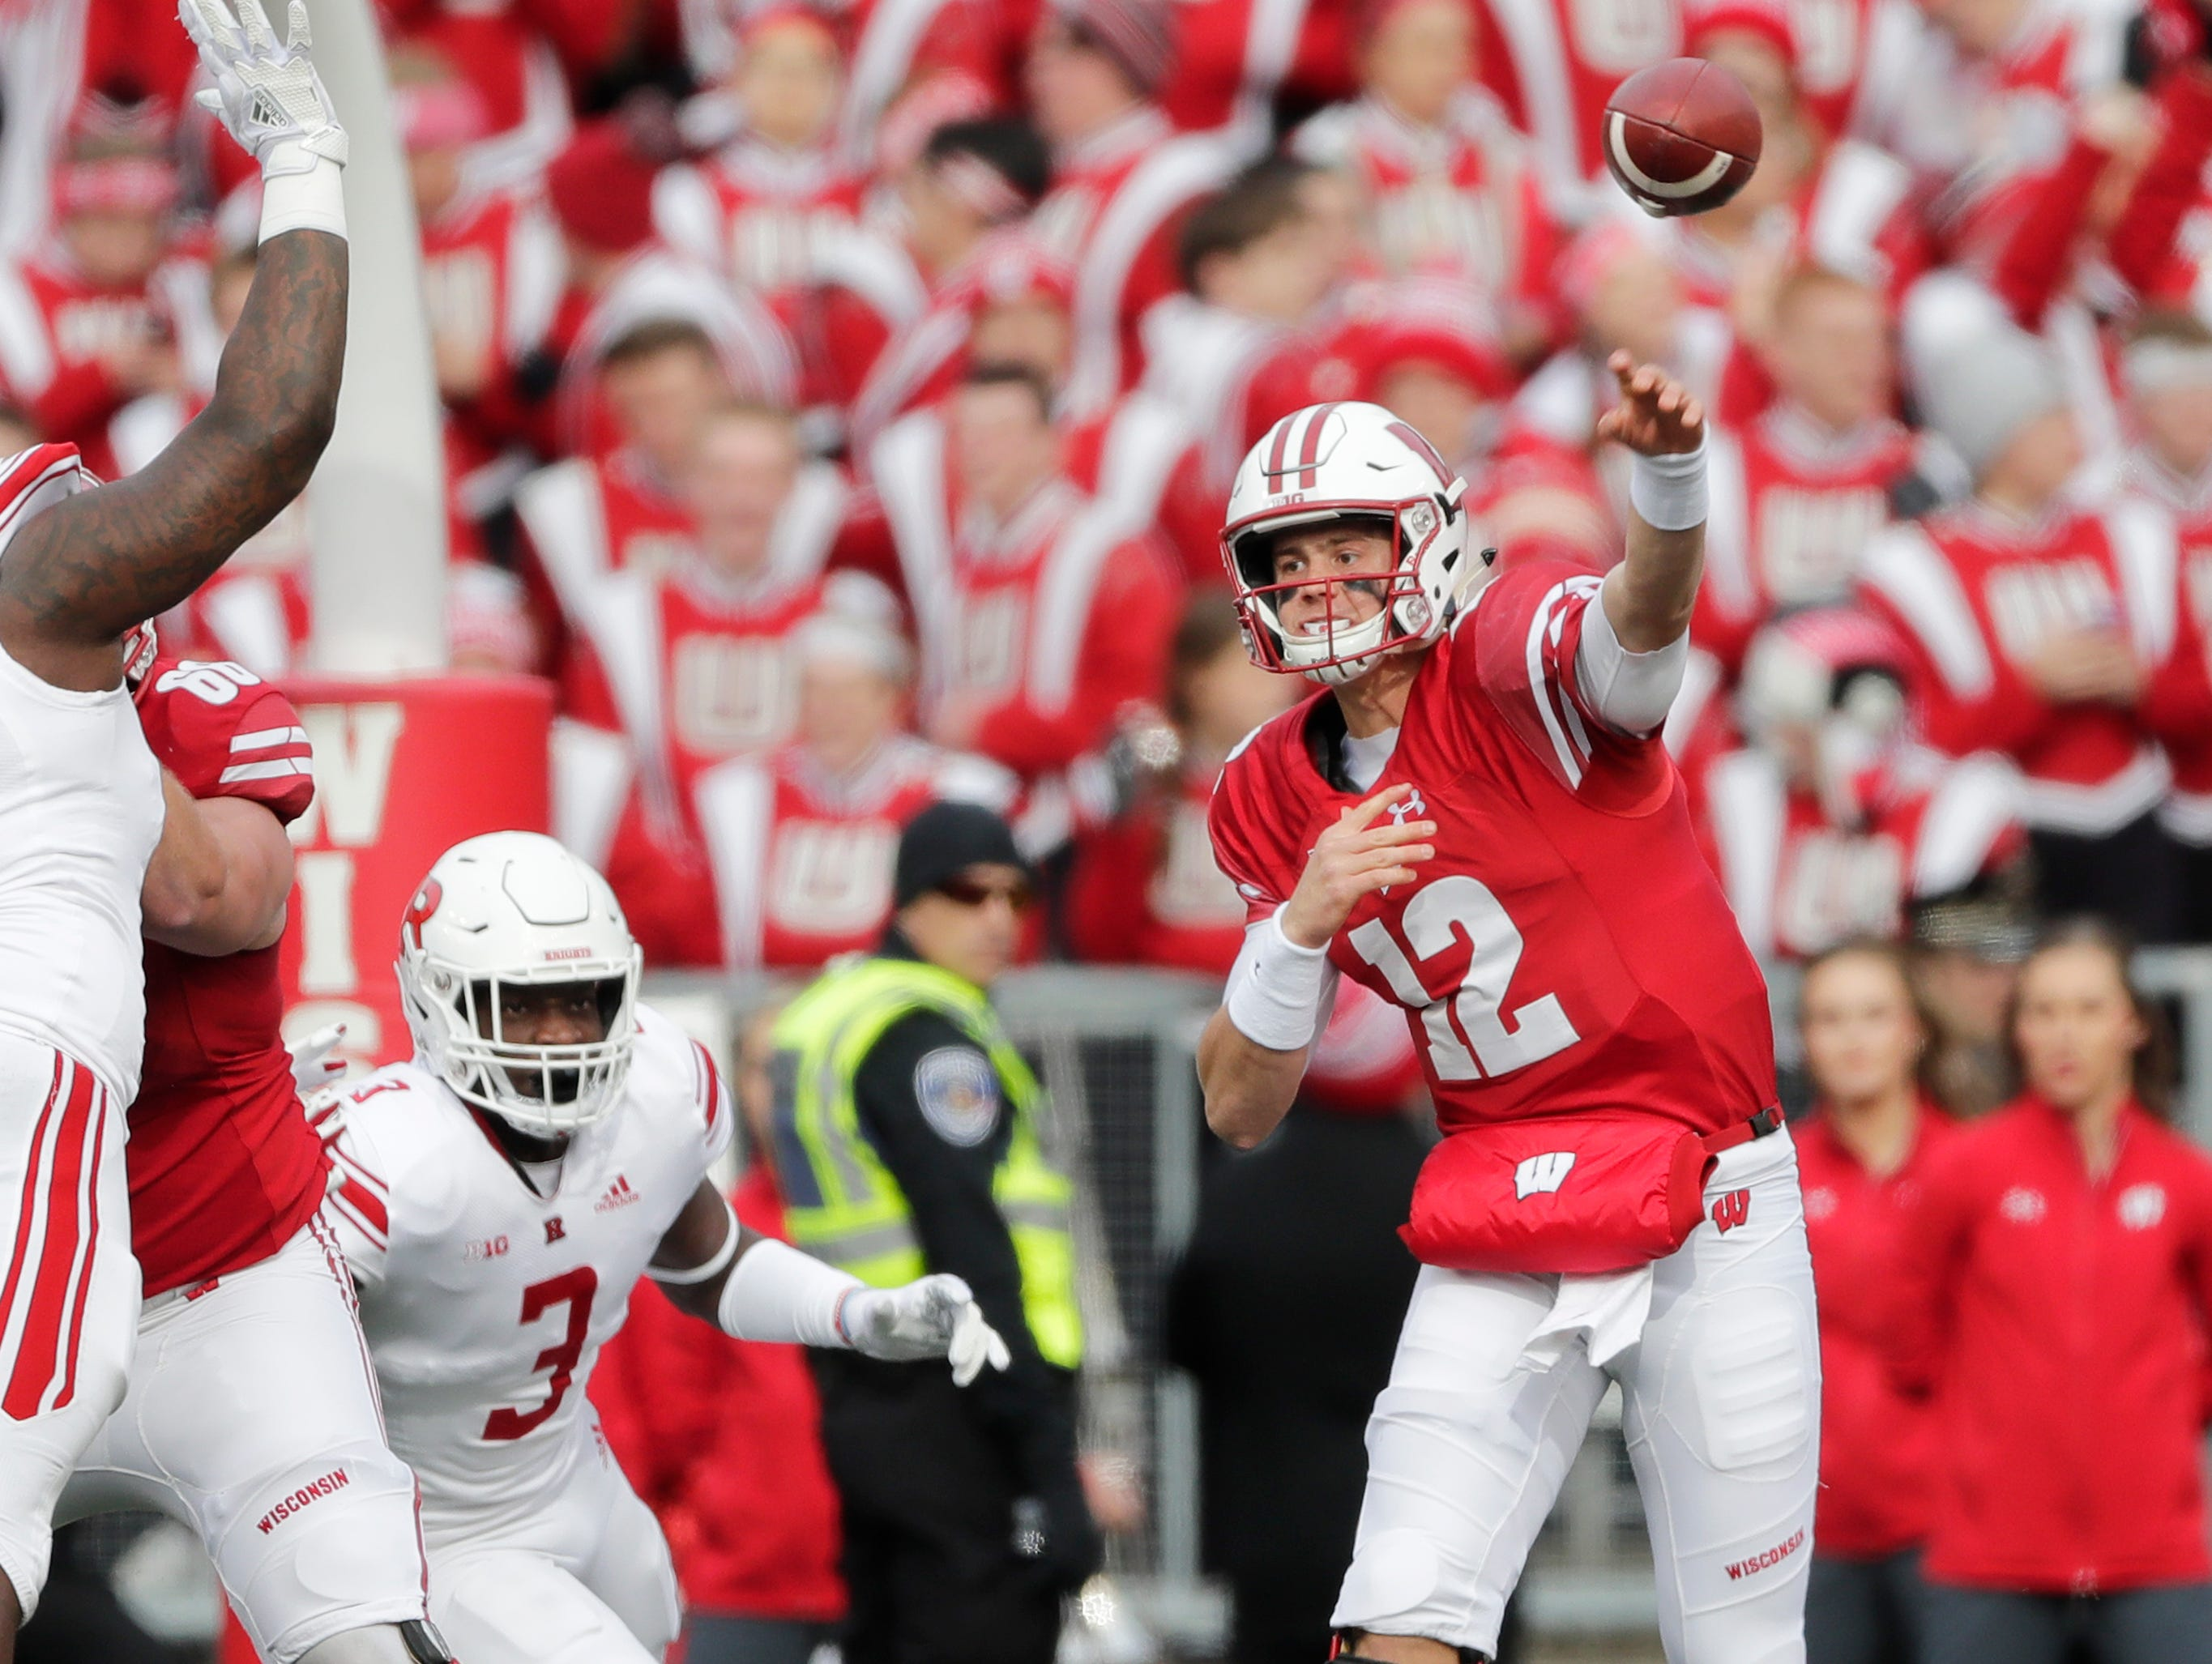 Wisconsin Badgers quarterback Alex Hornibrook (12) throws against the Rutgers Scarlet Knights in the first quarter of a Big Ten football game at Camp Randall Stadium on Saturday, November 3, 2018 in Madison, Wis.Adam Wesley/USA TODAY NETWORK-Wisconsin